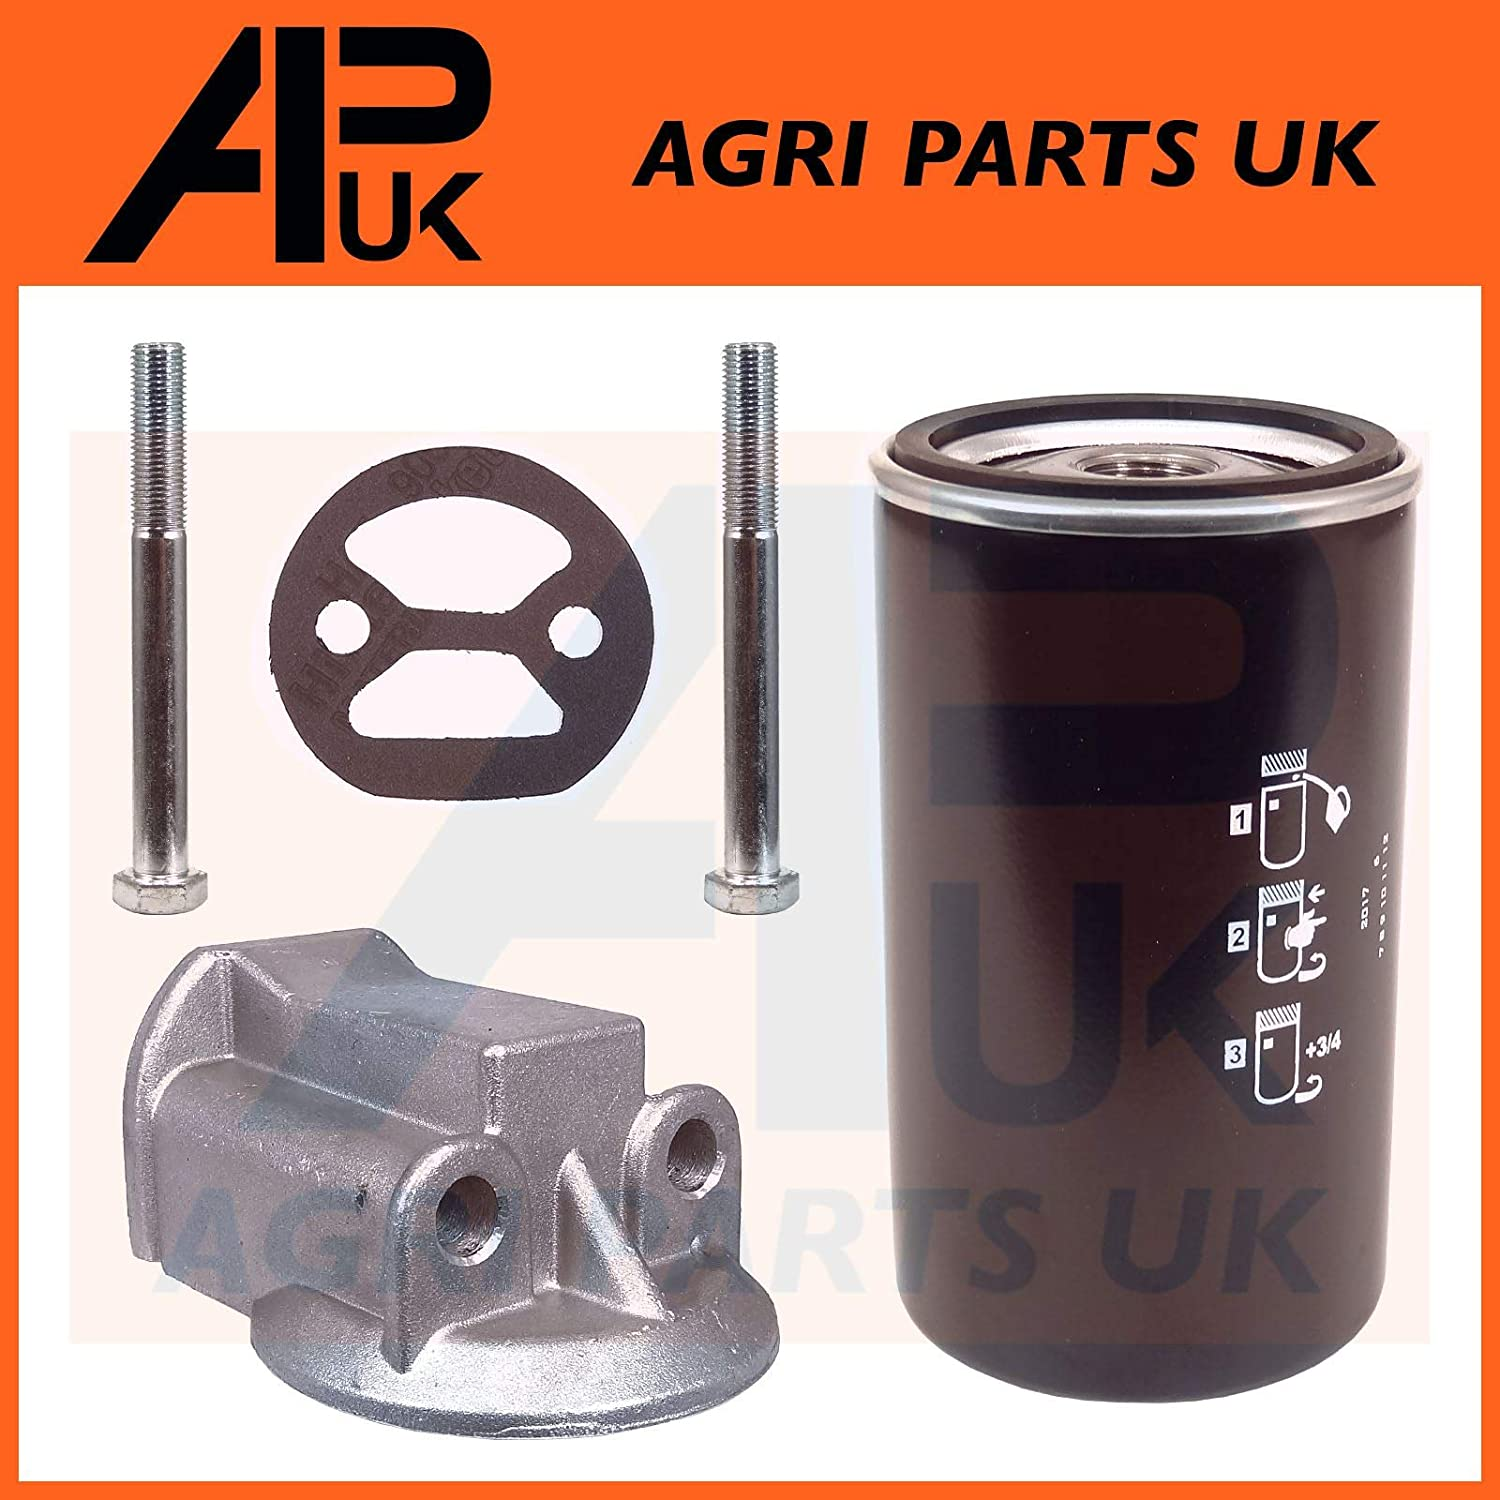 APUK Spin on Oil filter Conversion Kit Compatible with Leyland 245 253 502 602 604 702 802 Tractor